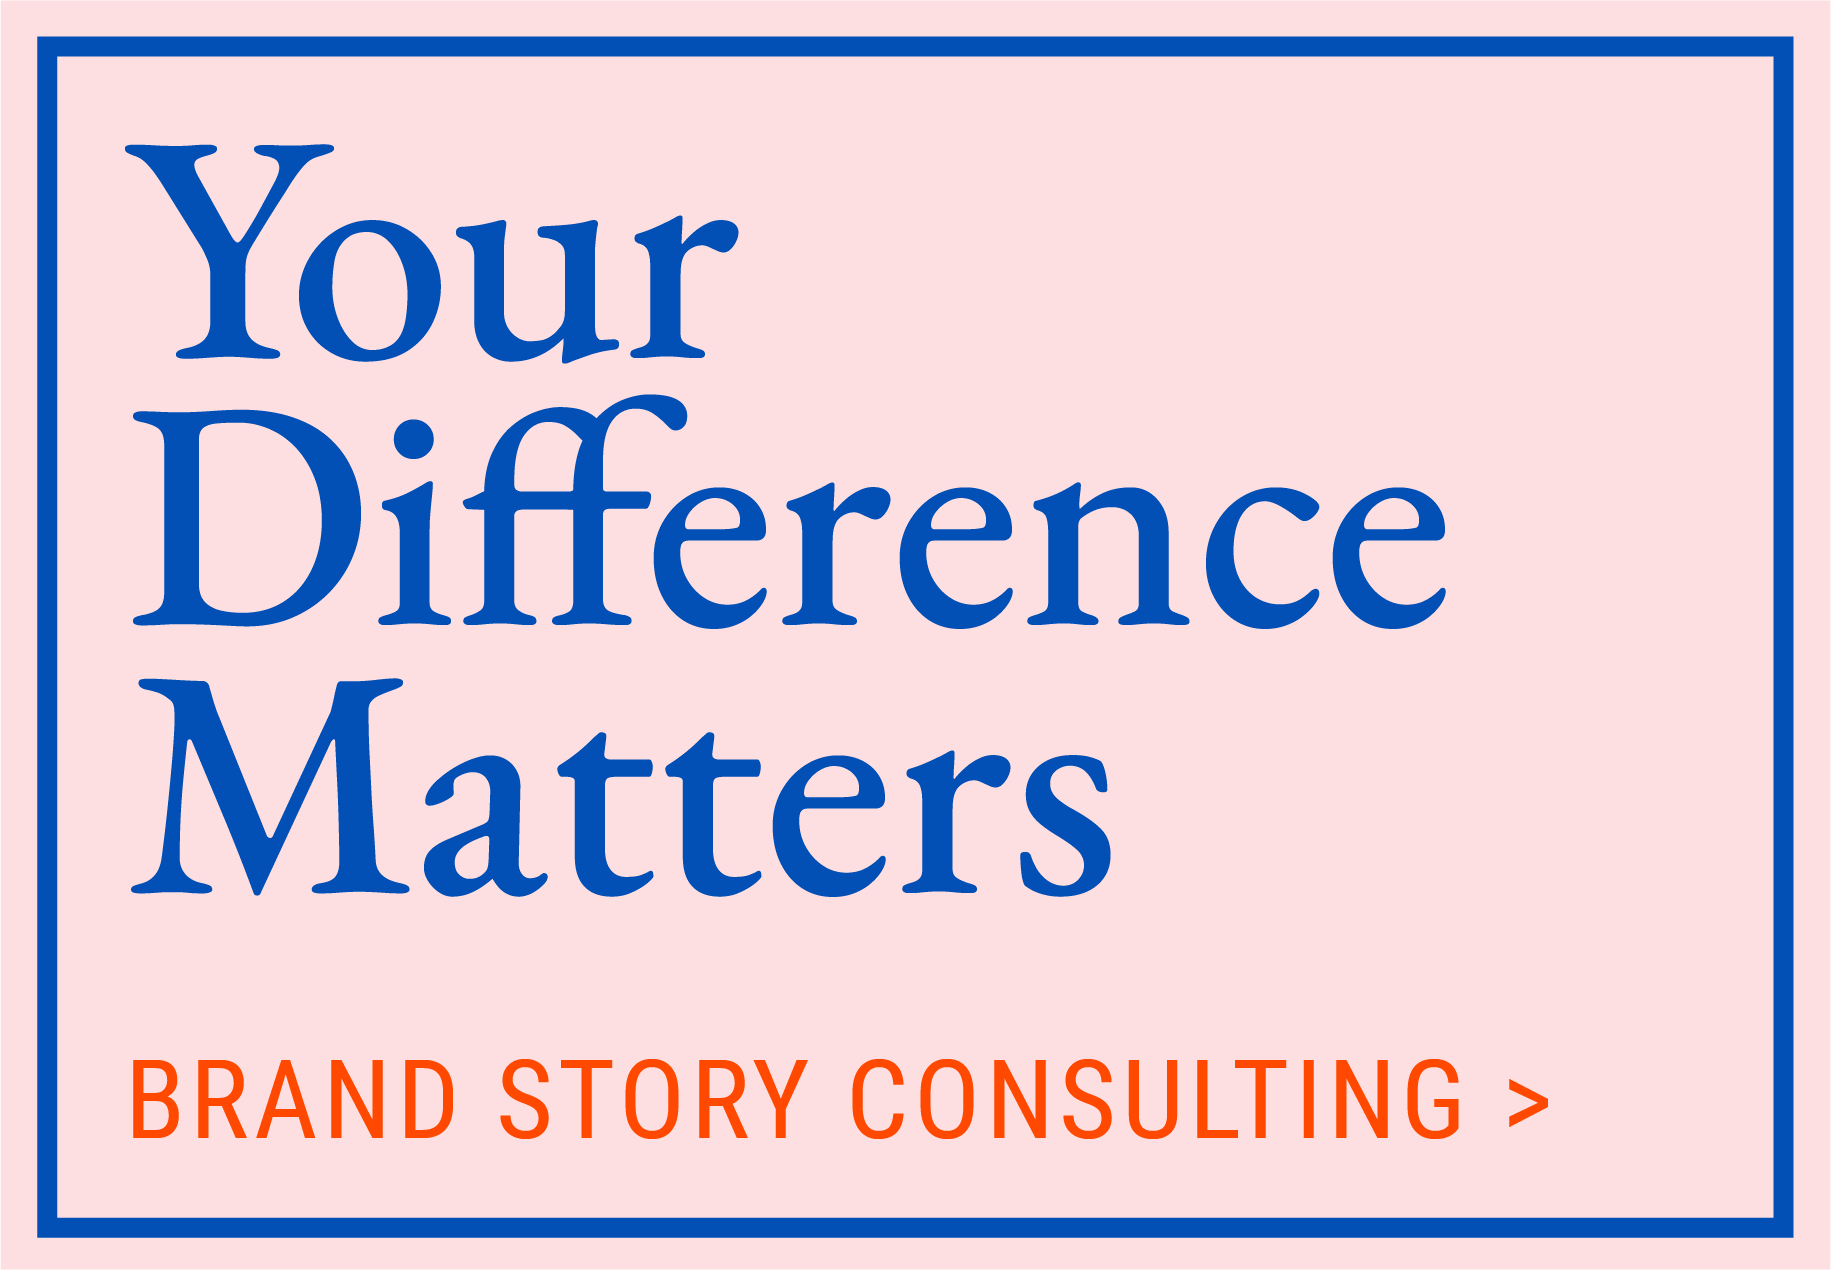 Your Difference Matters, Brand Story Consulting